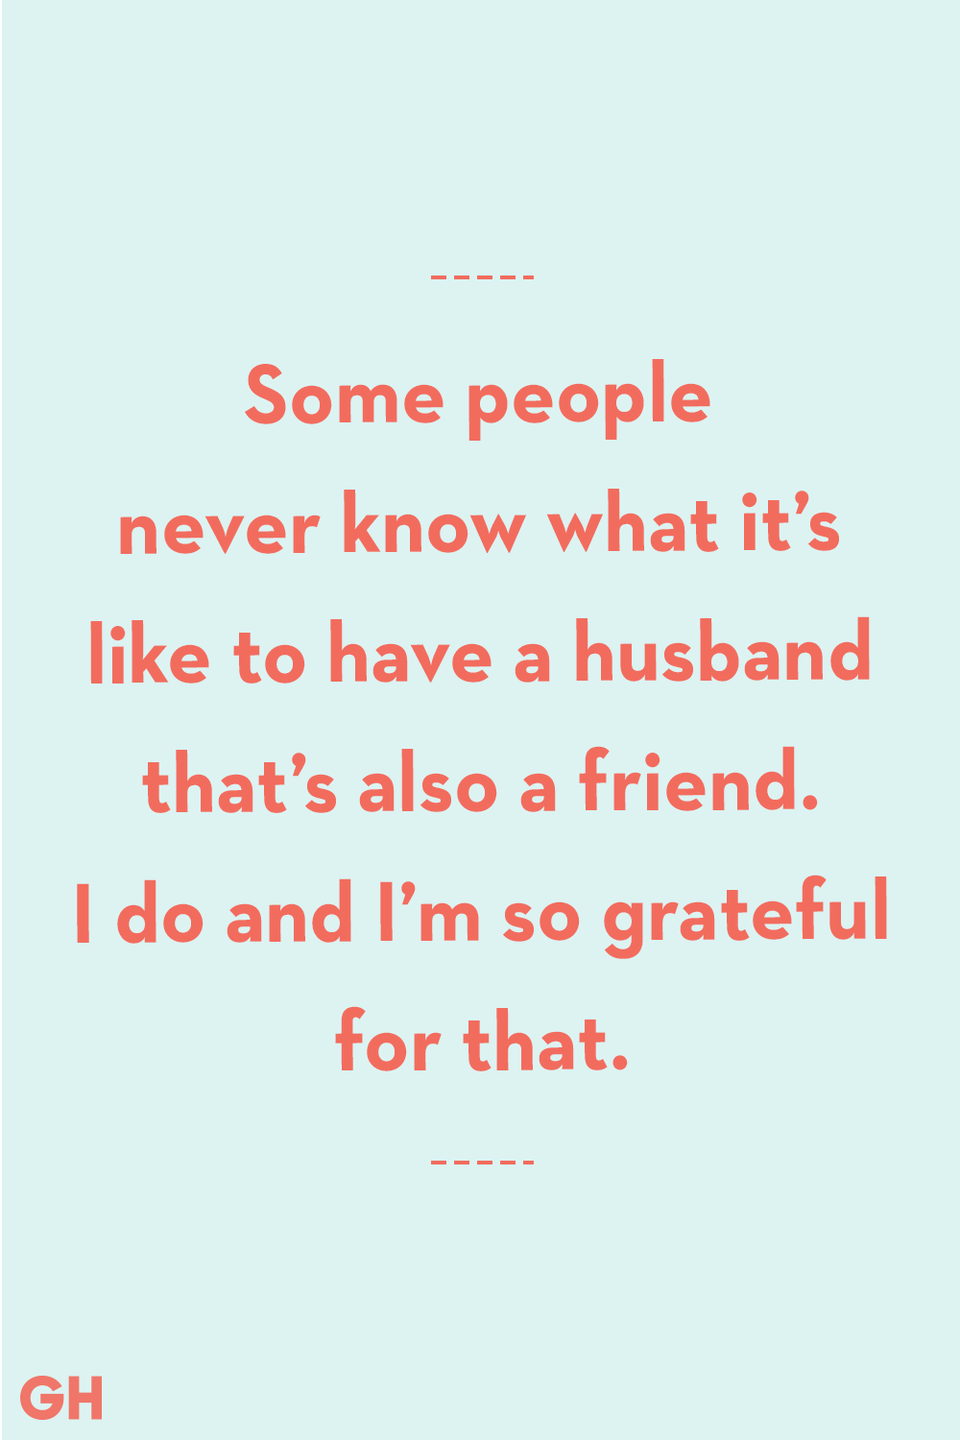 <p>Some people never know what it's like to have a husband that's also a friend. I do and I'm so grateful for that.</p>